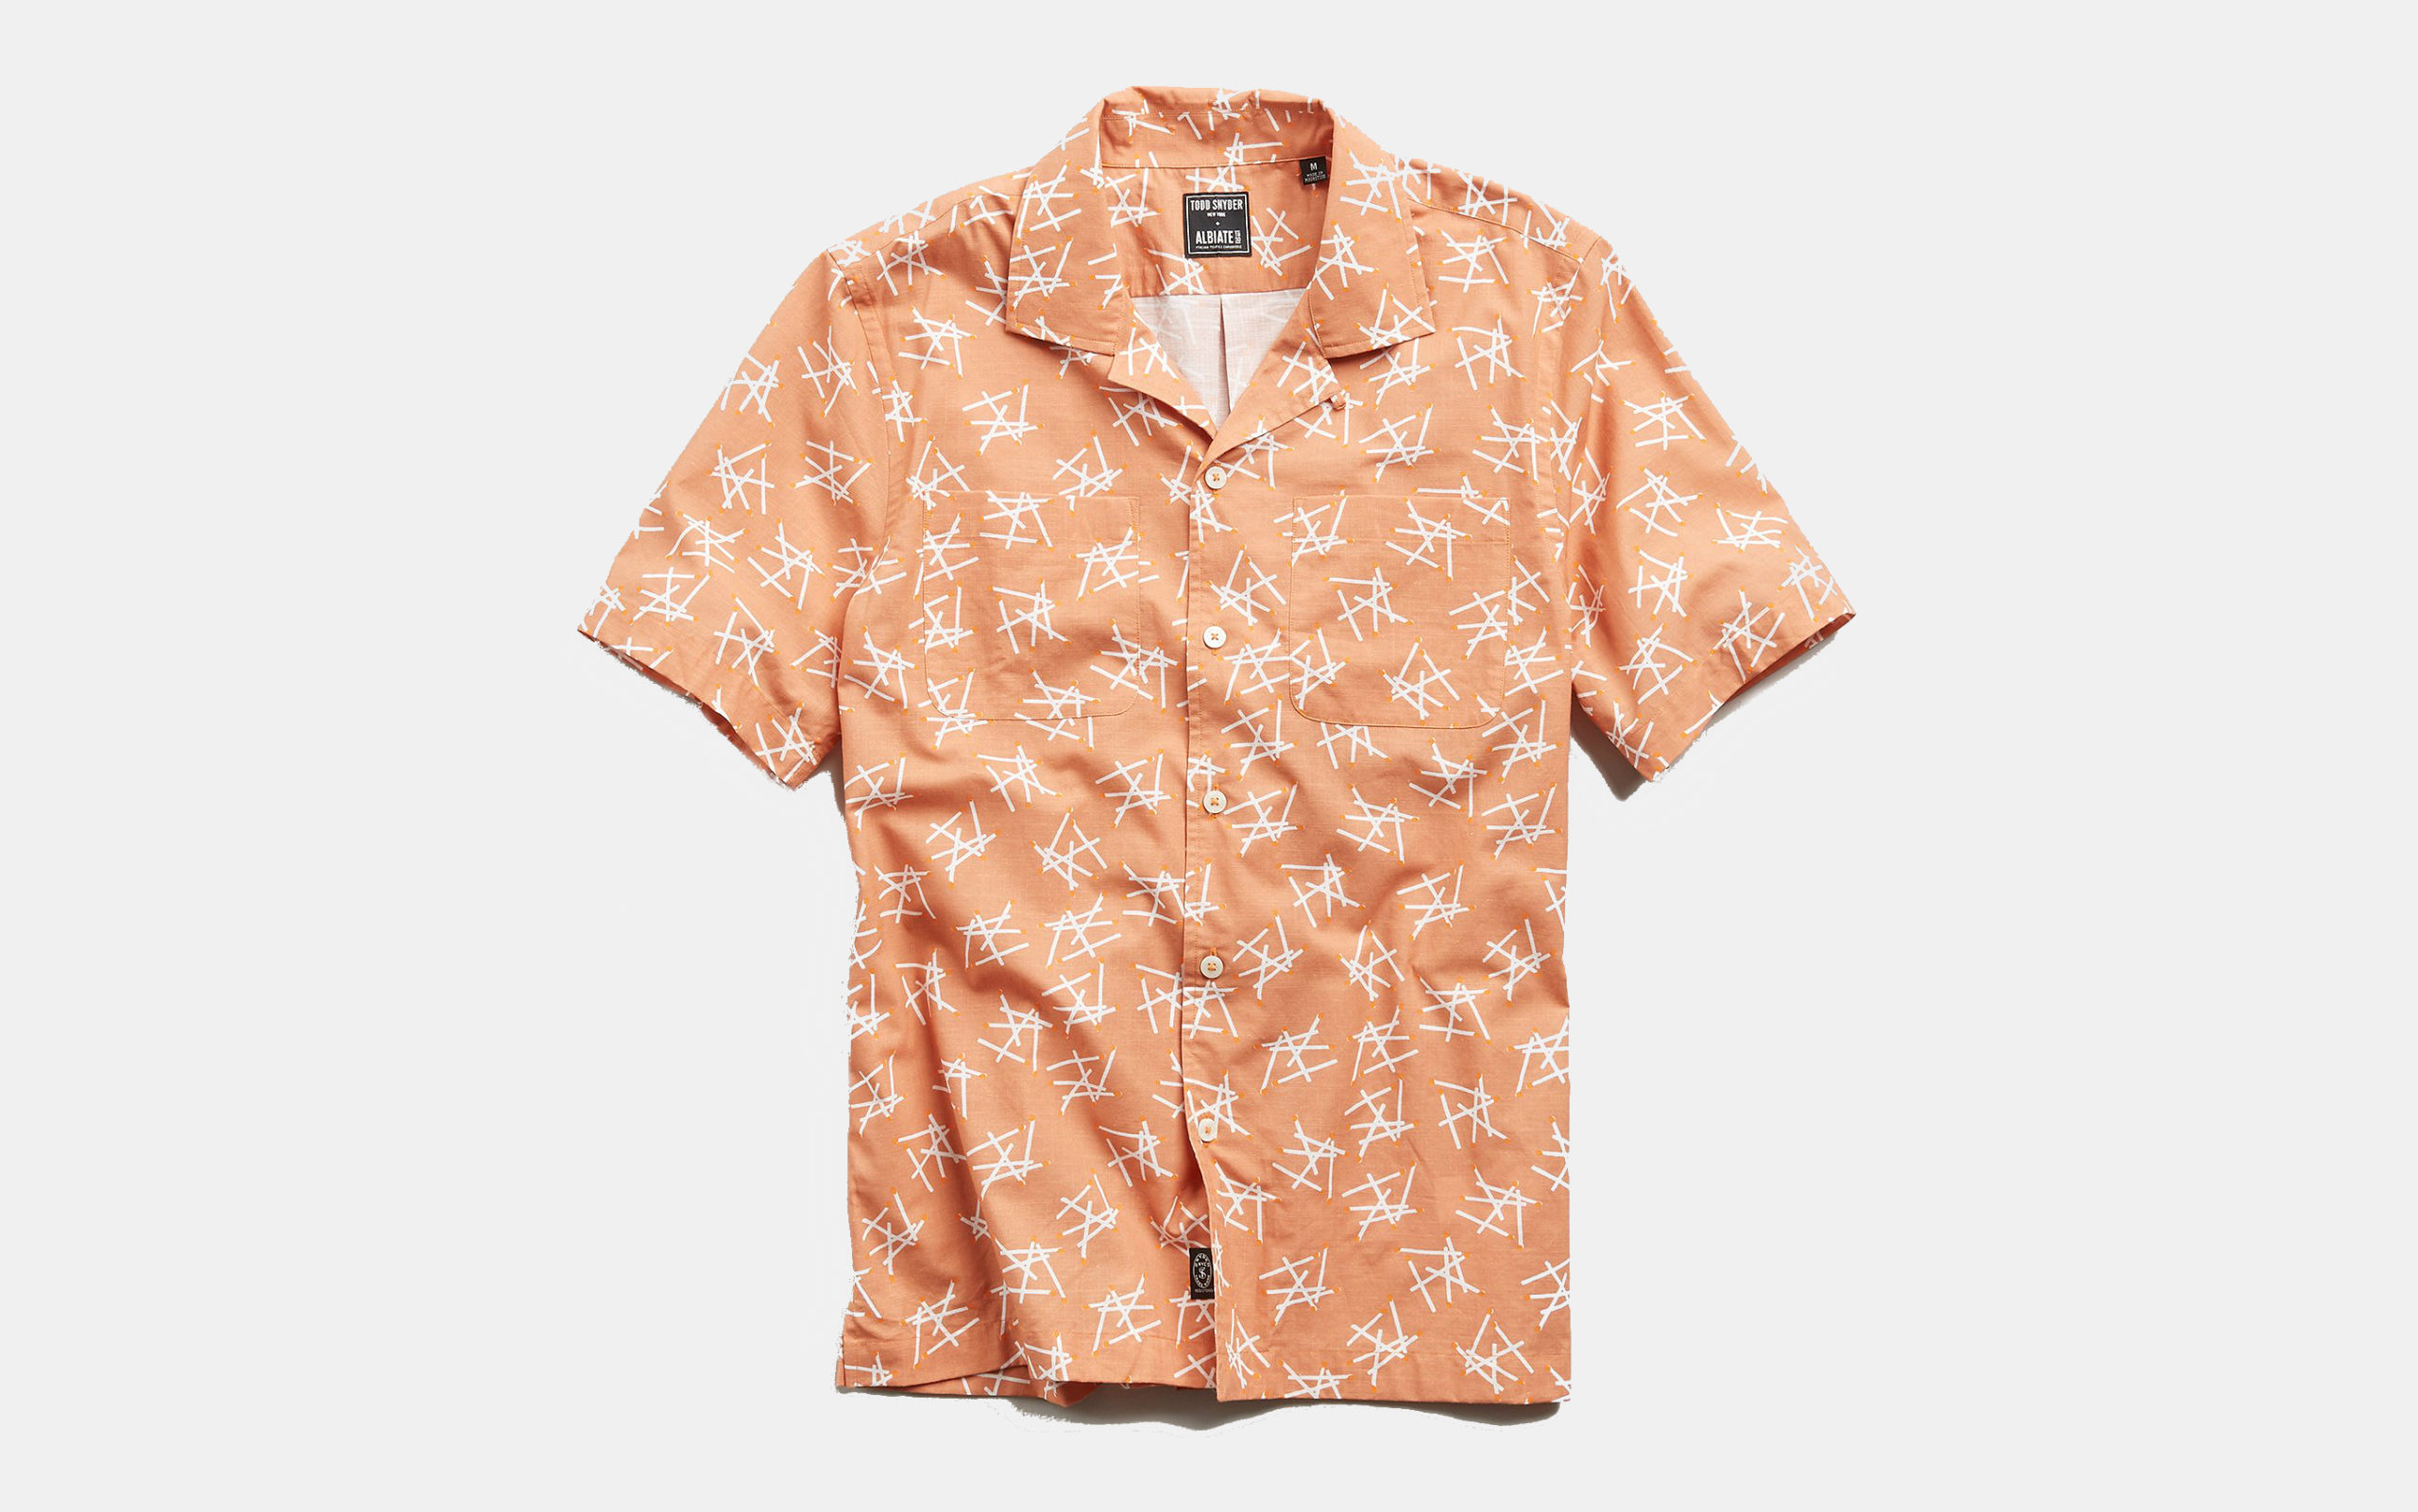 Todd Snyder Limited Edition Matchstick Print Camp Shirt